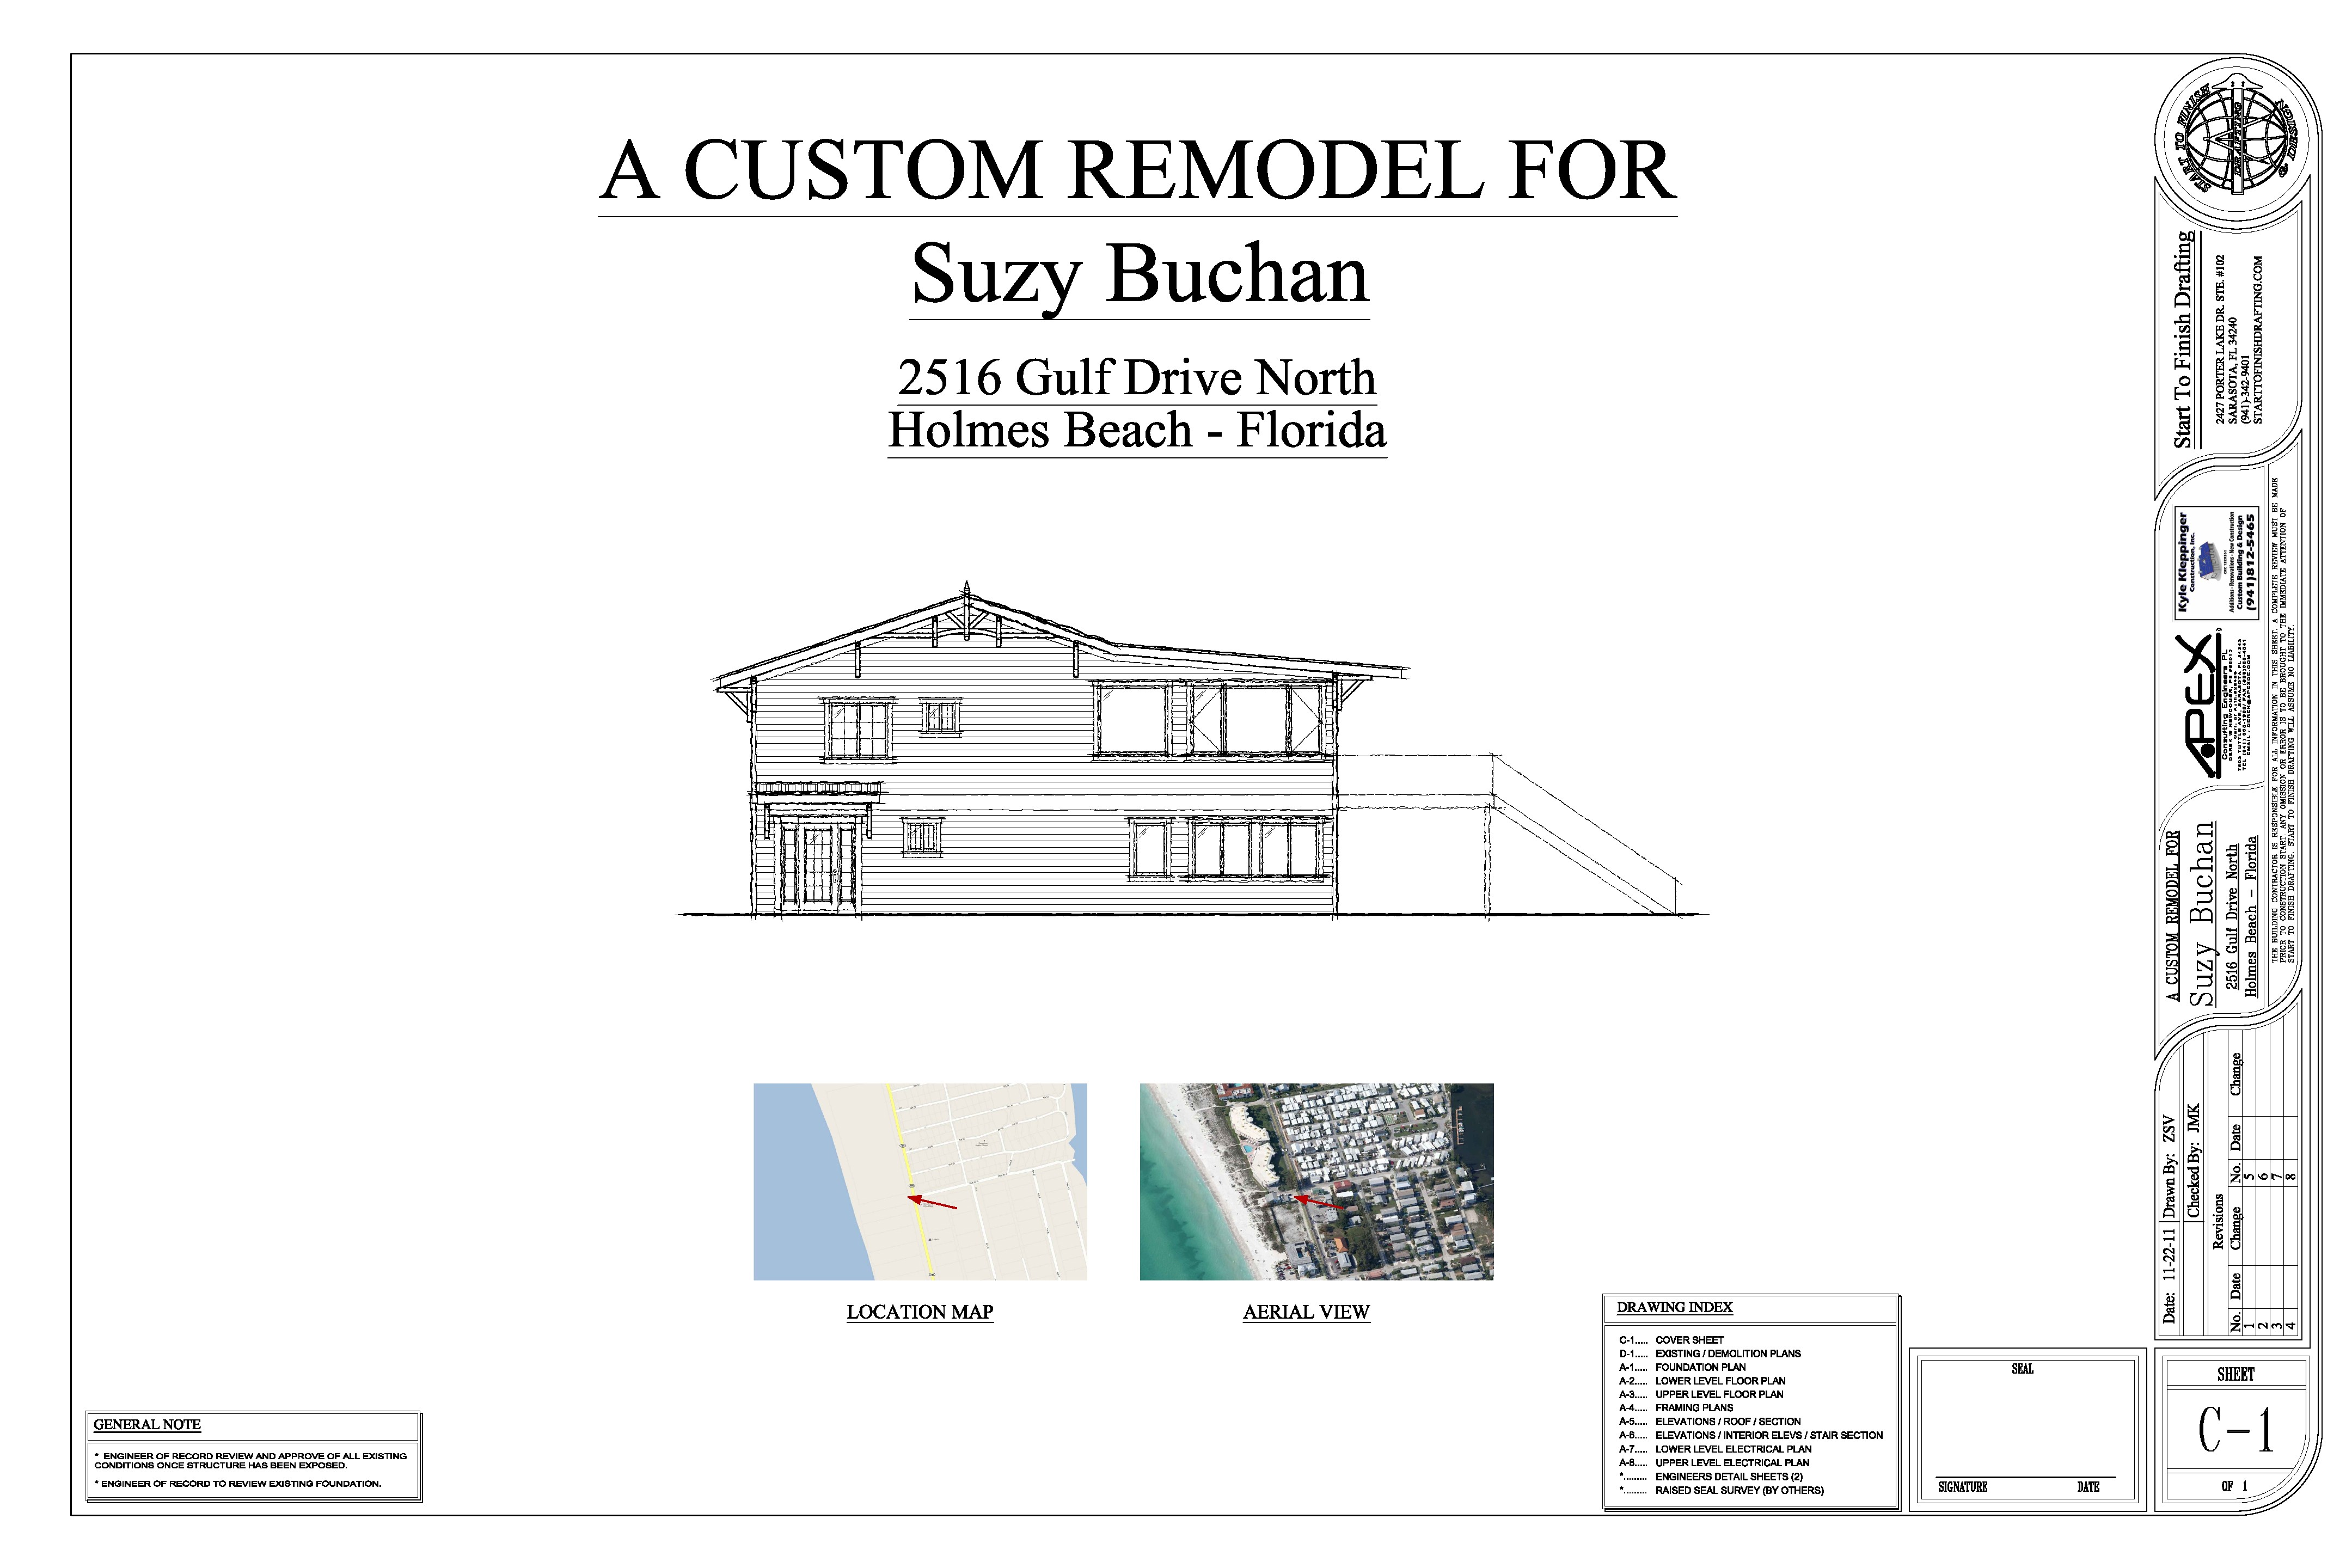 remodeling drafting services cad bathroom kitchen remodeling stfdd Electrical Plan Symbols suzy beach house